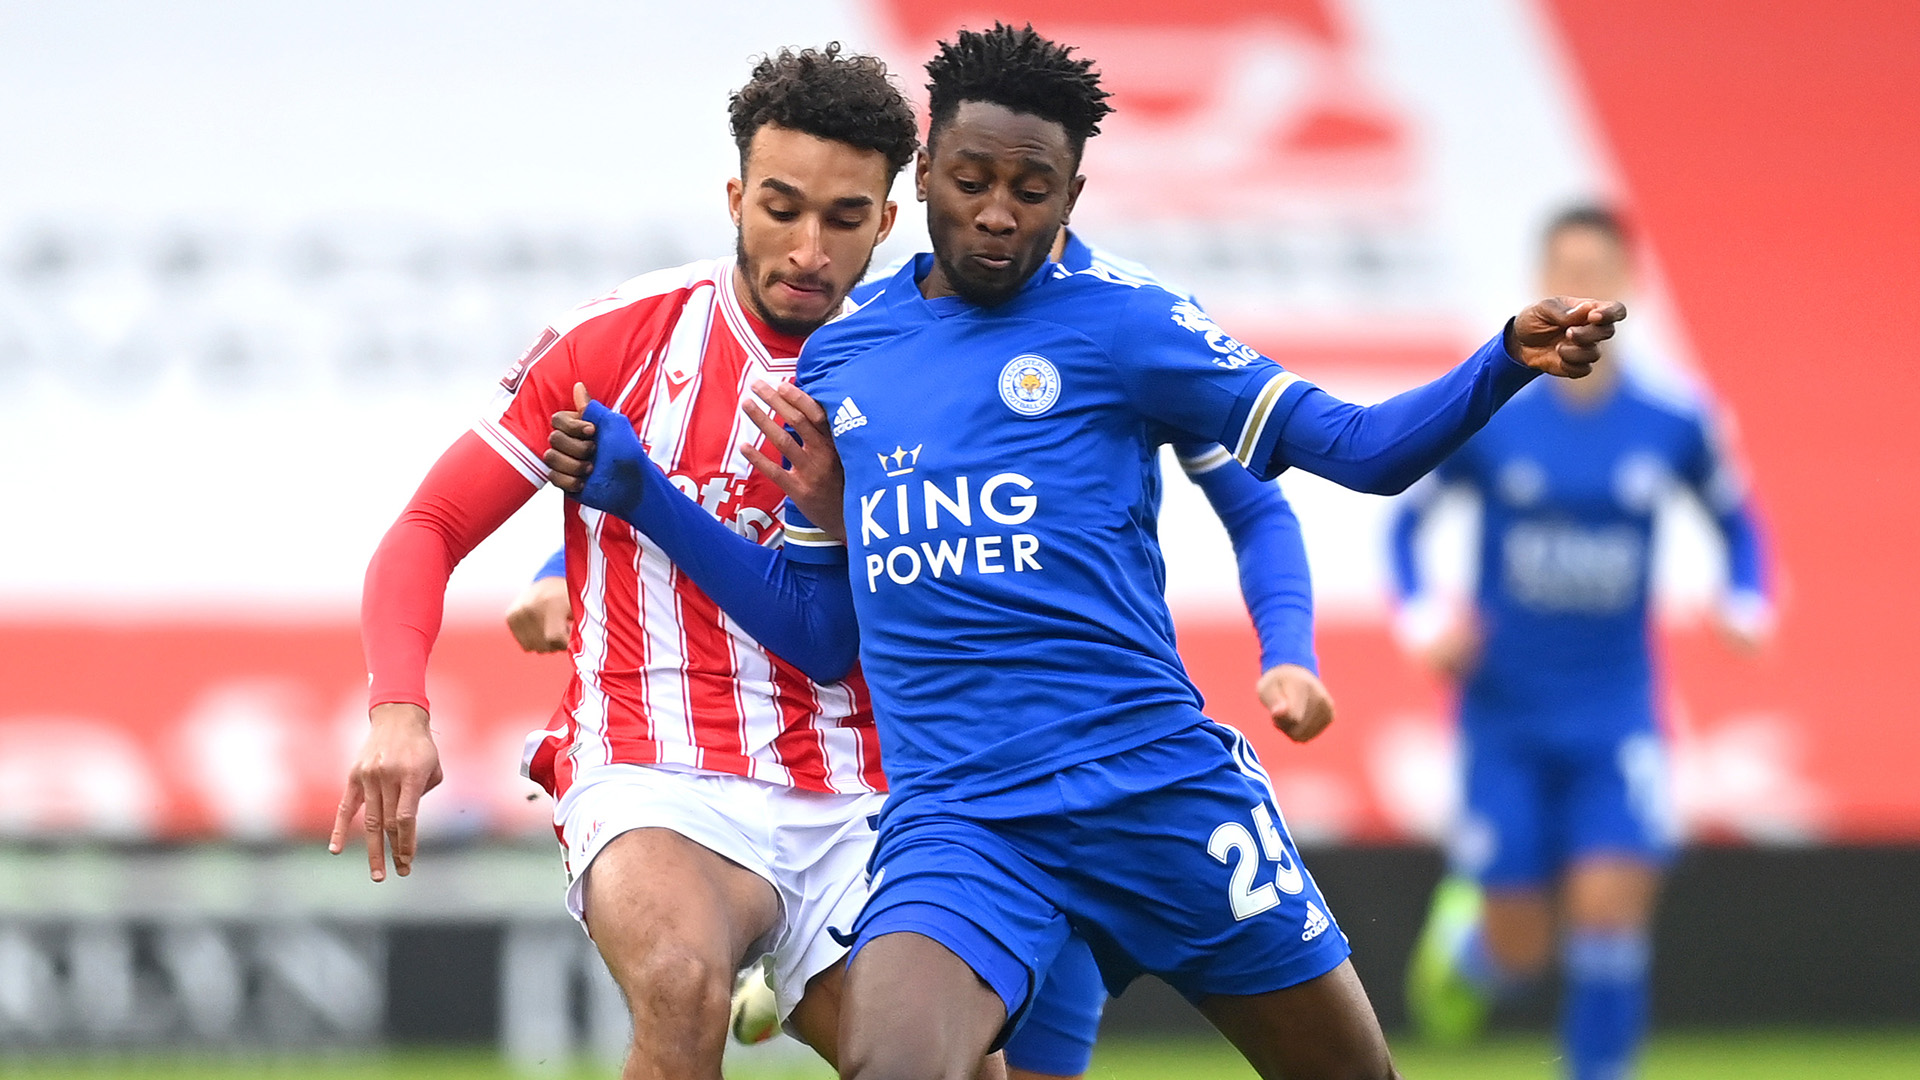 Leicester City boss Rodgers hopes to have Ndidi back against Wolverhampton Wanderers